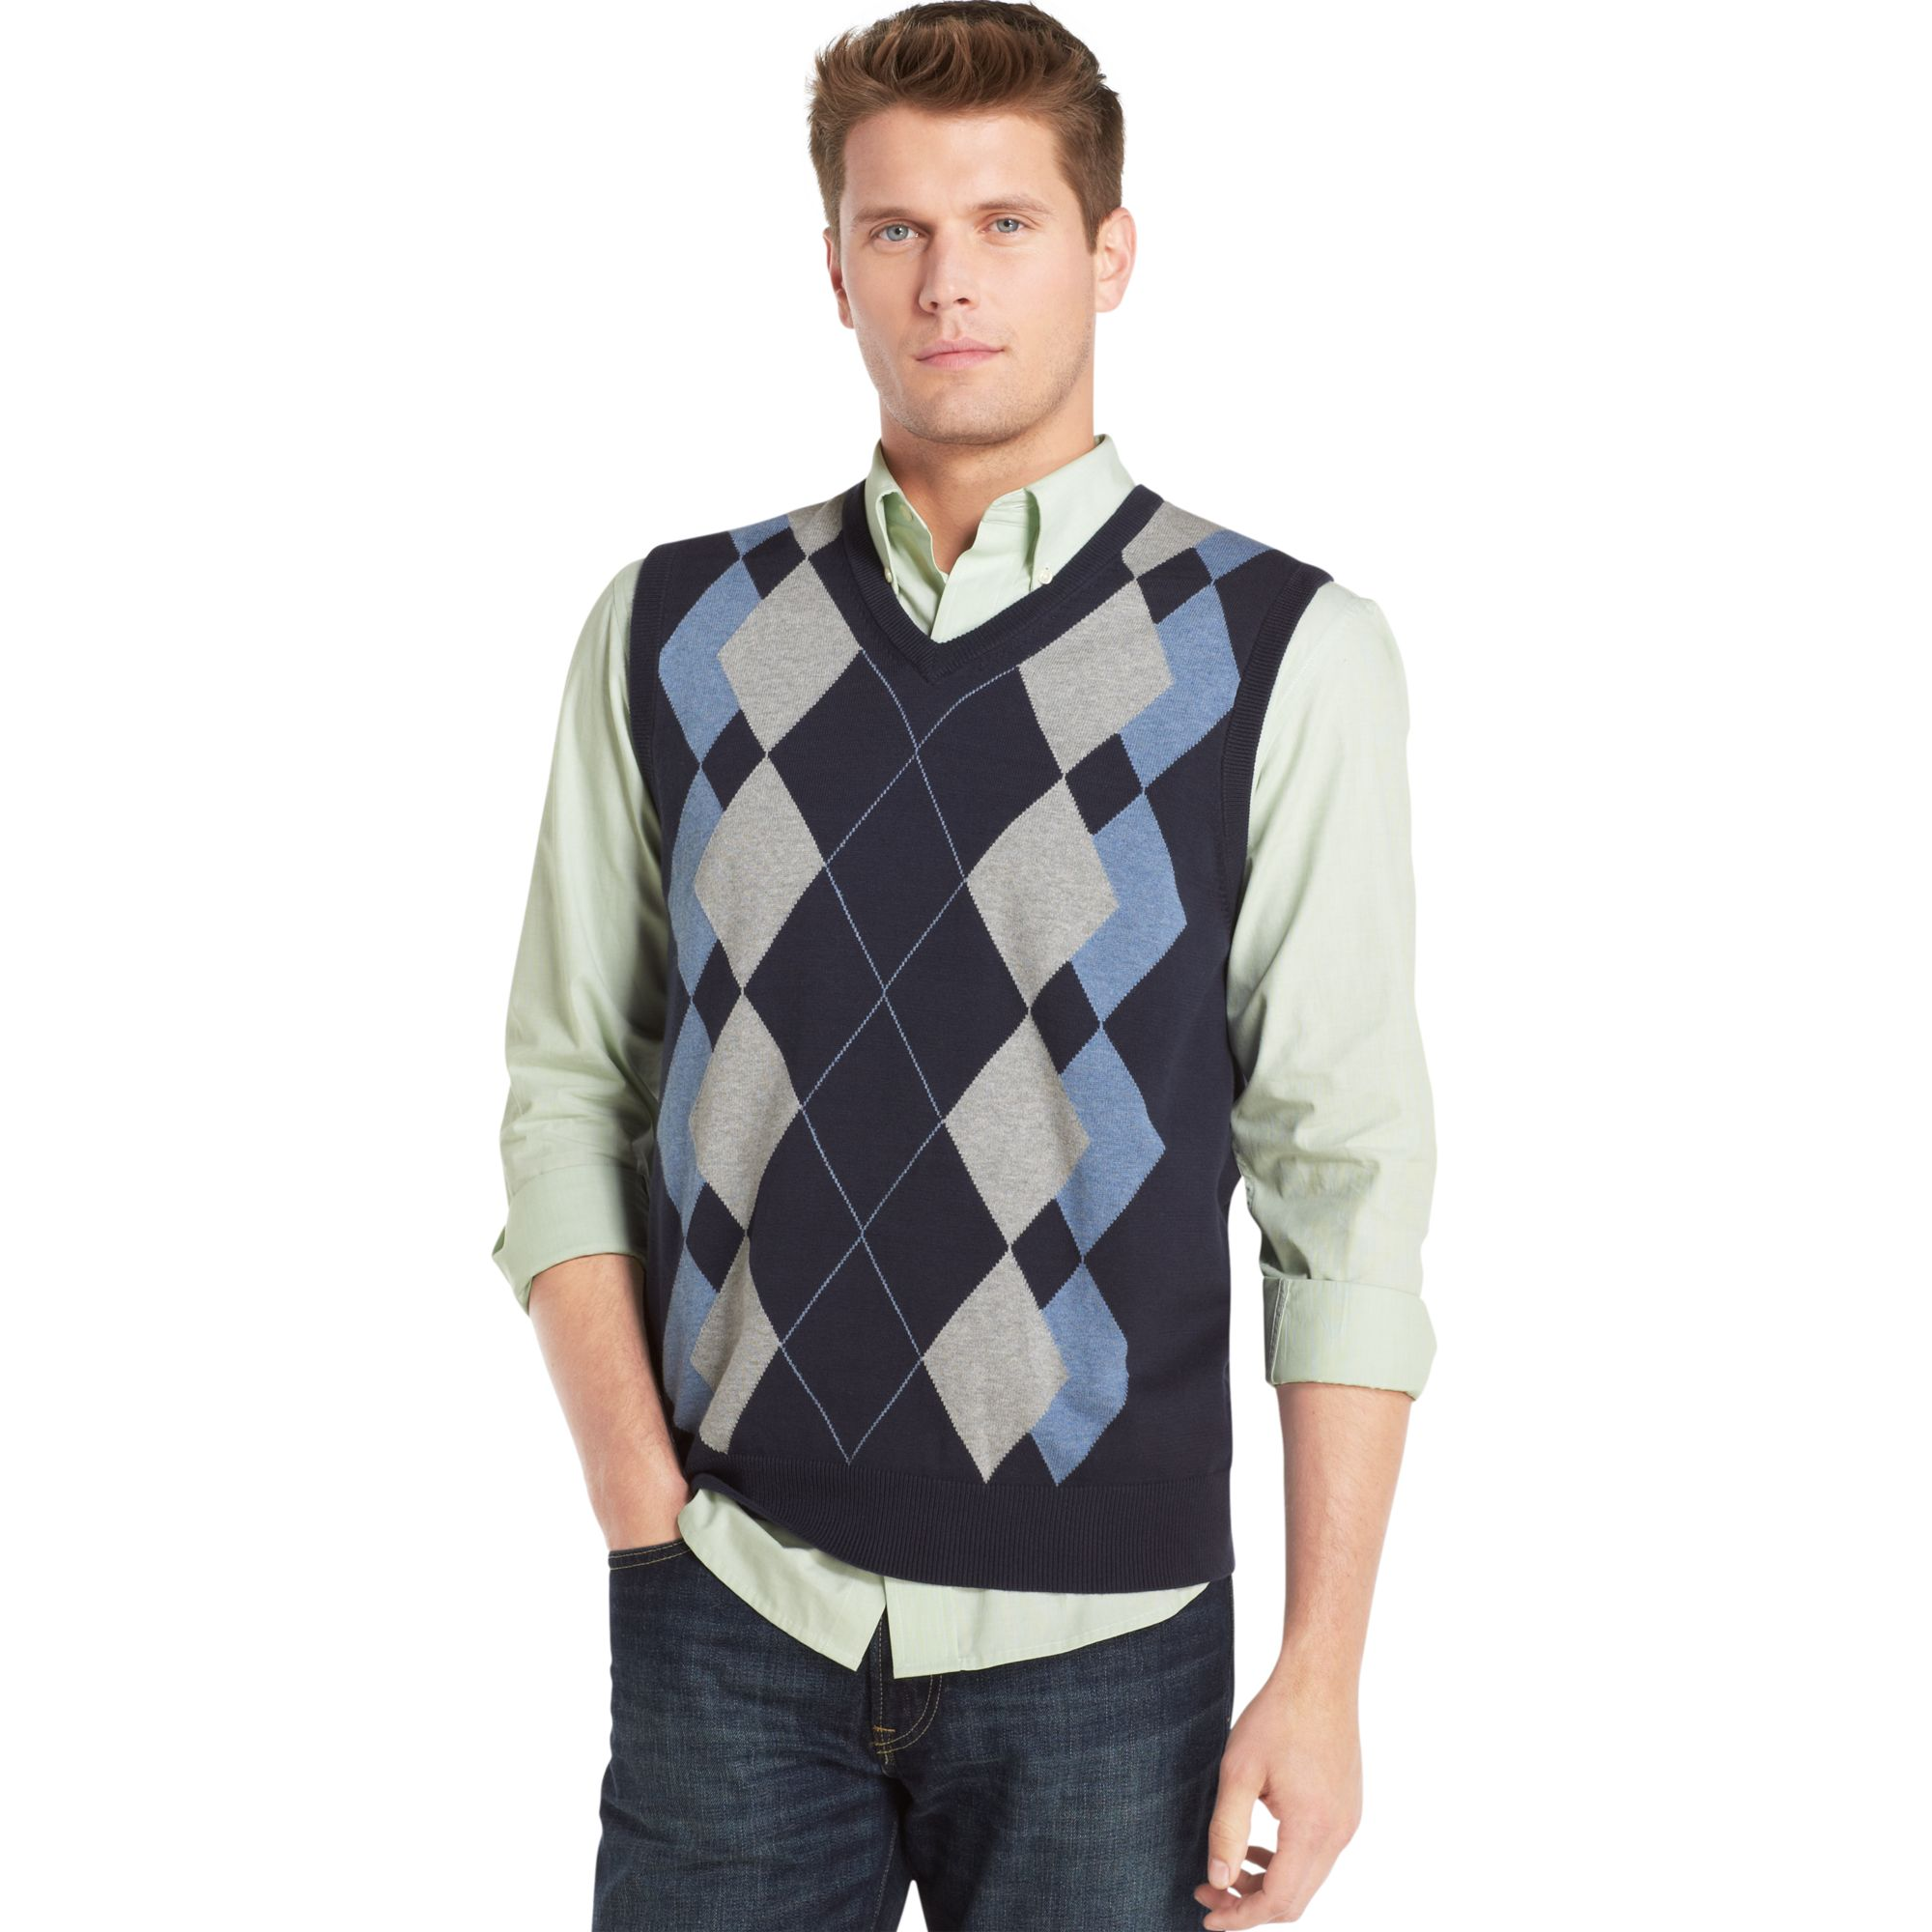 Shop for men's sweater vests & polo sweater vests. See the latest styles, brands & colors of sweater vests from Men's Wearhouse.